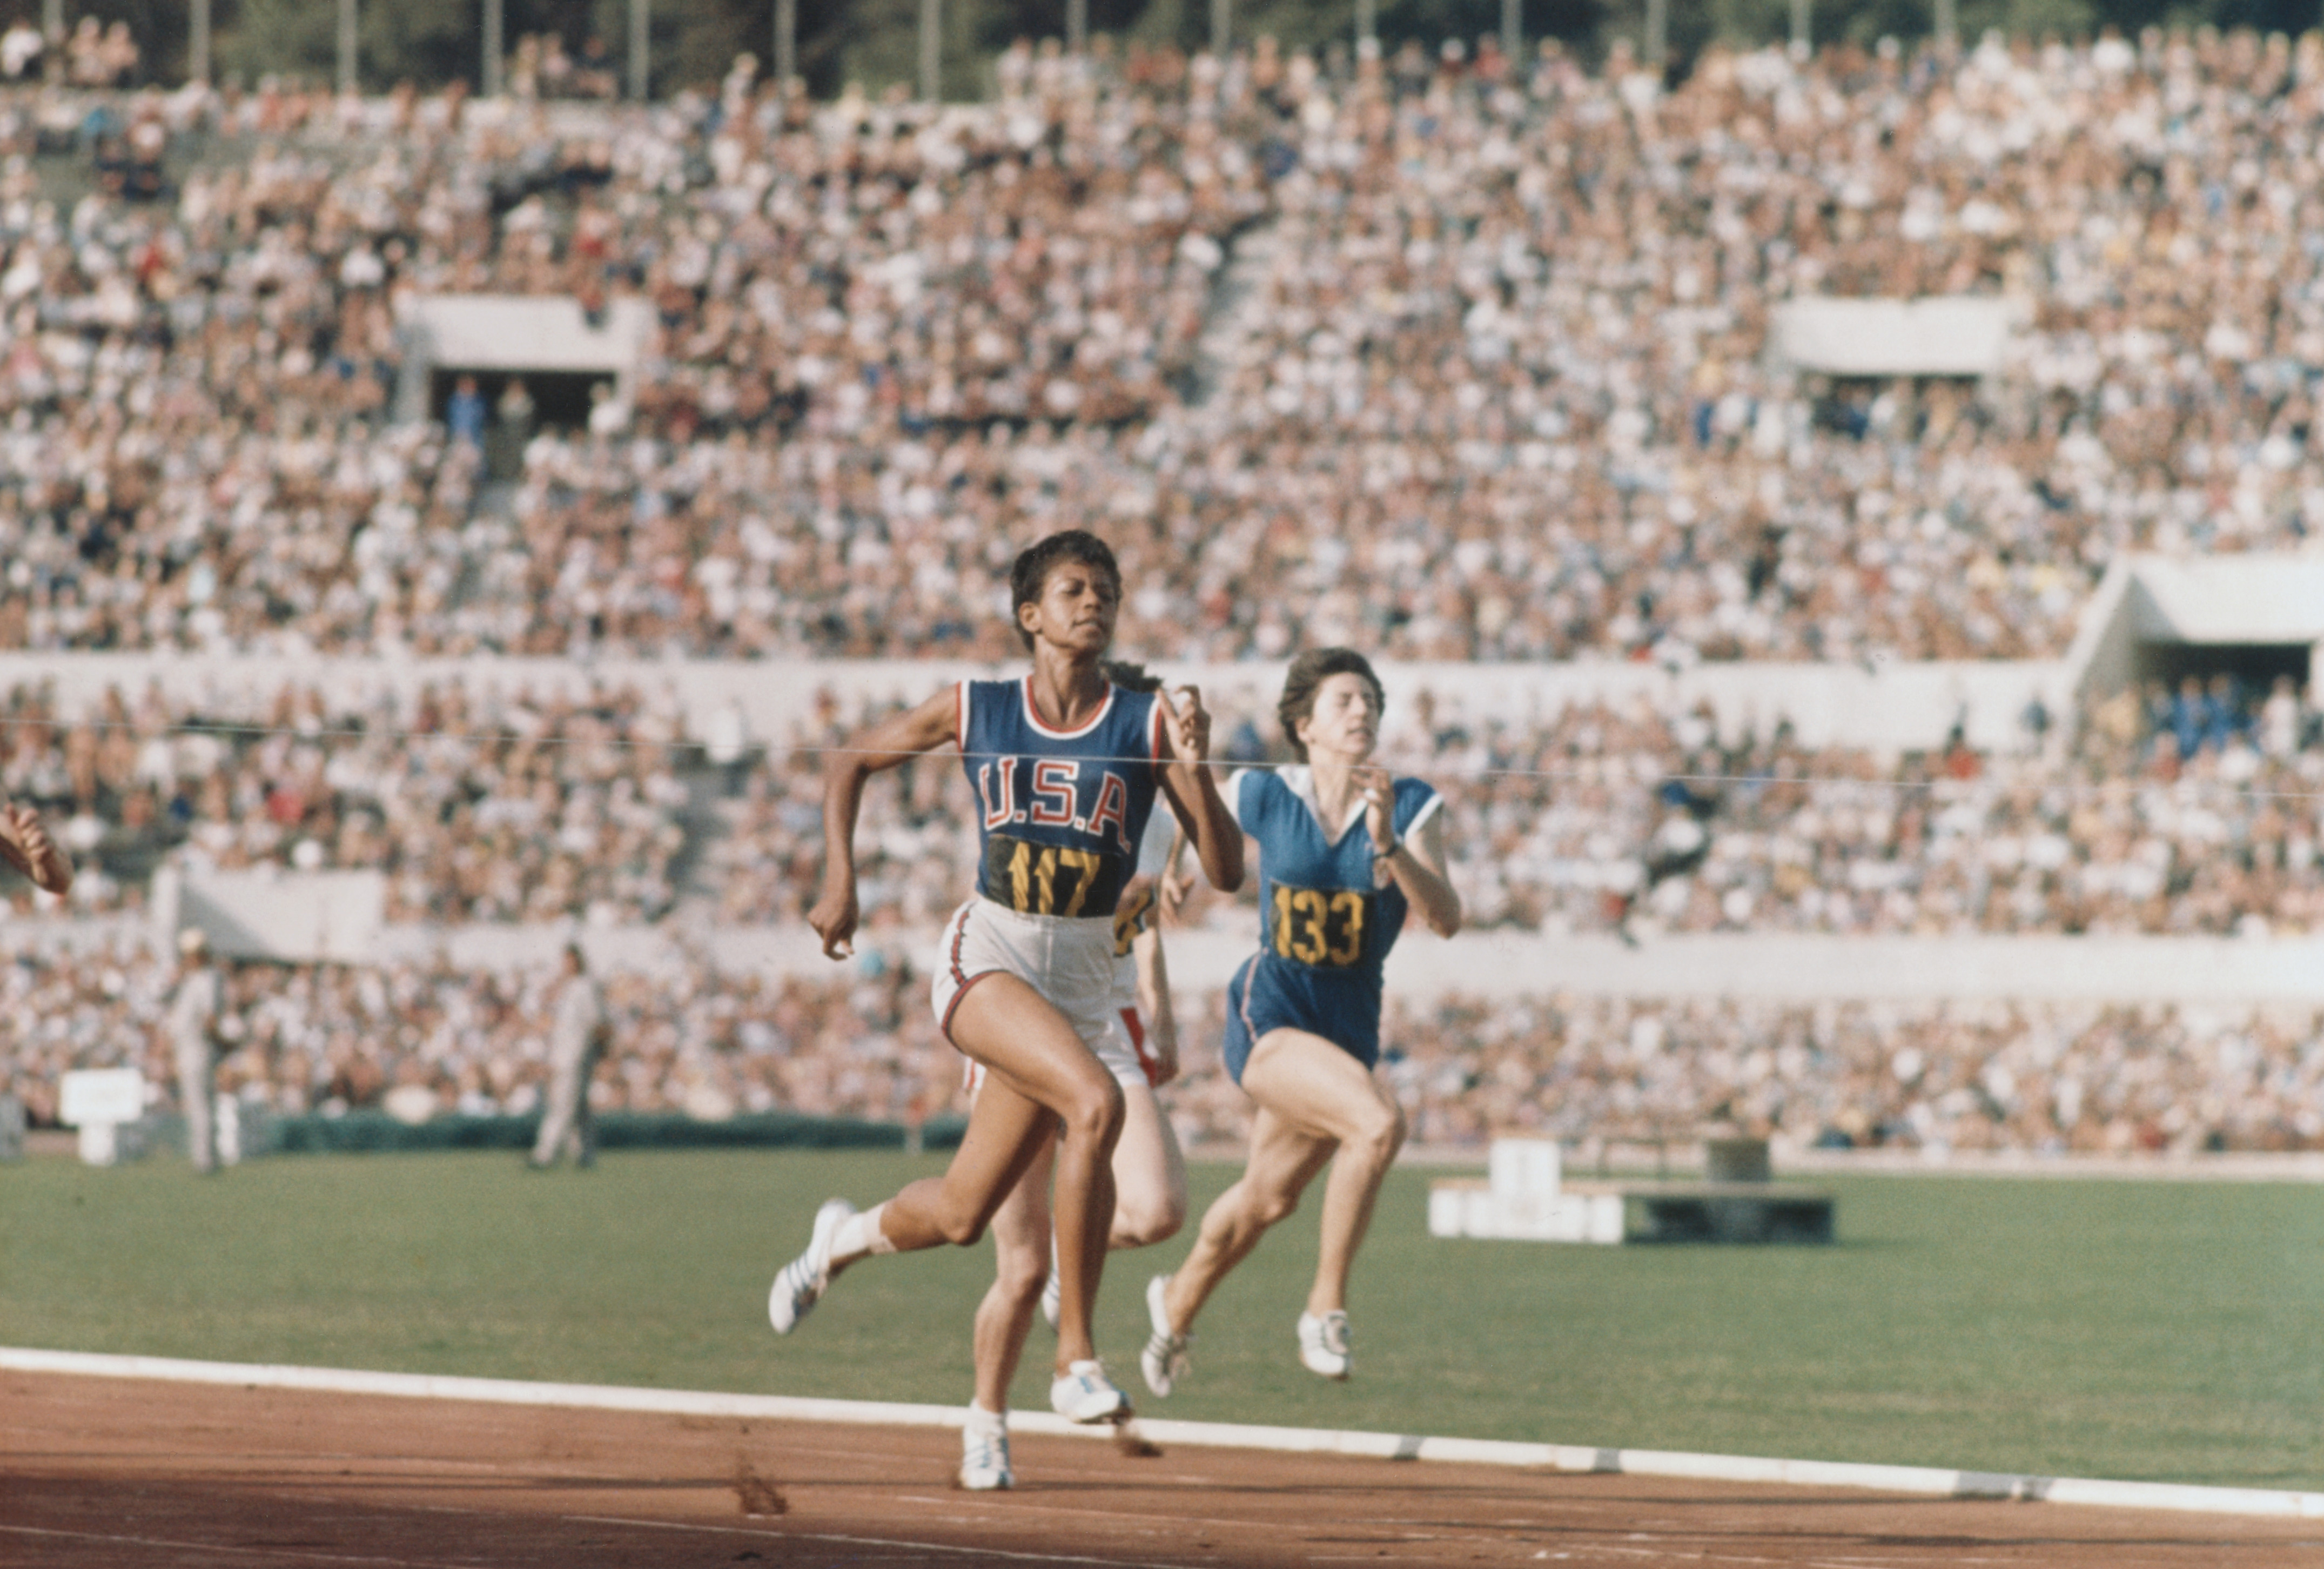 Wilma rudolph sprinting in 1960 summer olympics black women wilma rudolph gold medal 1960 1960 olympics rome italy track voltagebd Choice Image